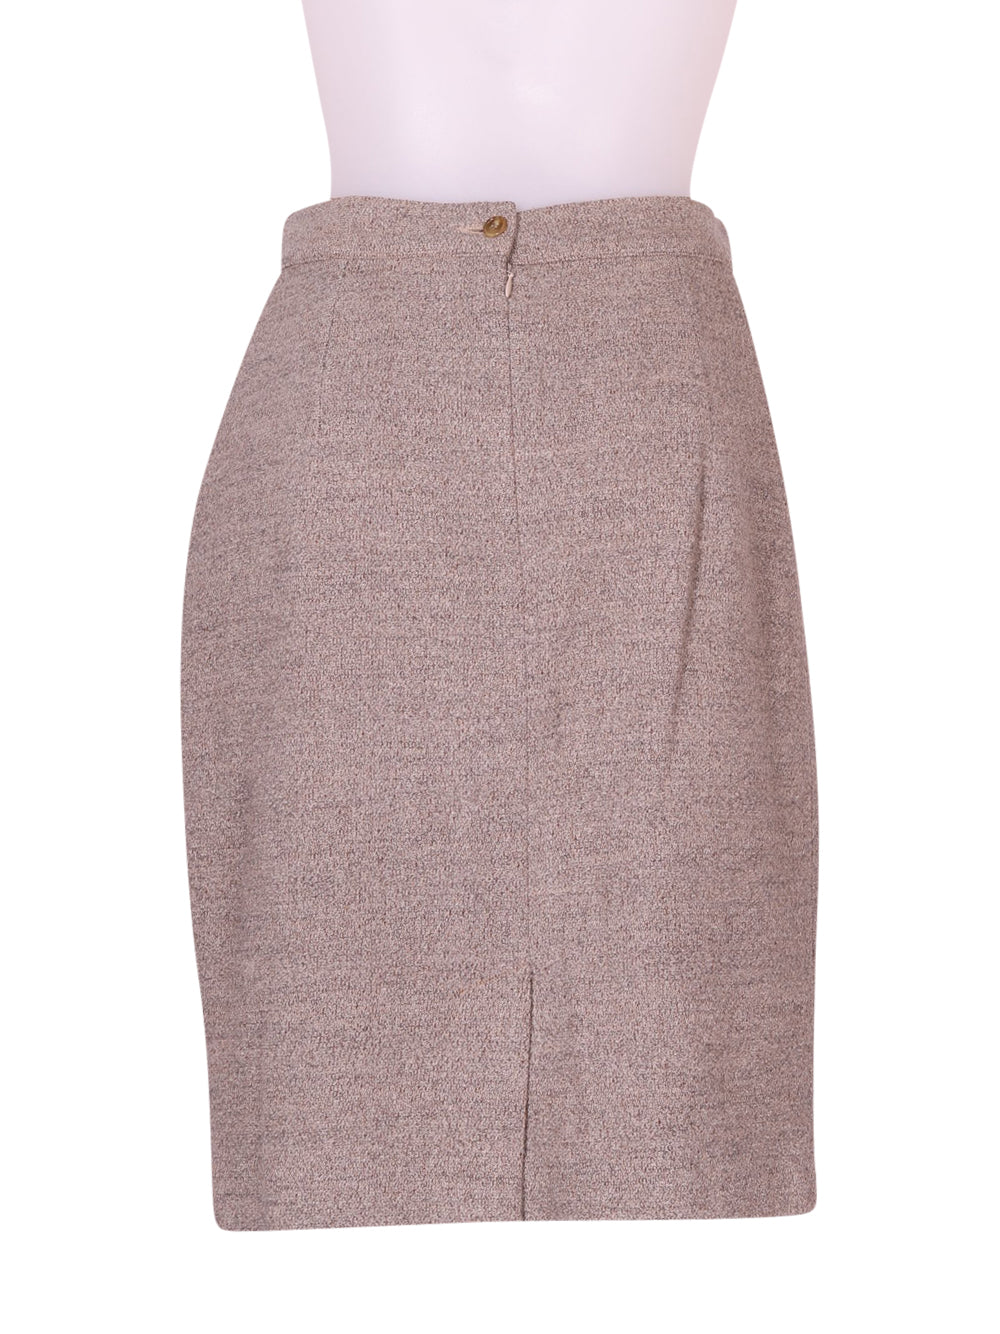 Back photo of Preloved fiorella cassaghi Beige Woman's skirt - size 10/M